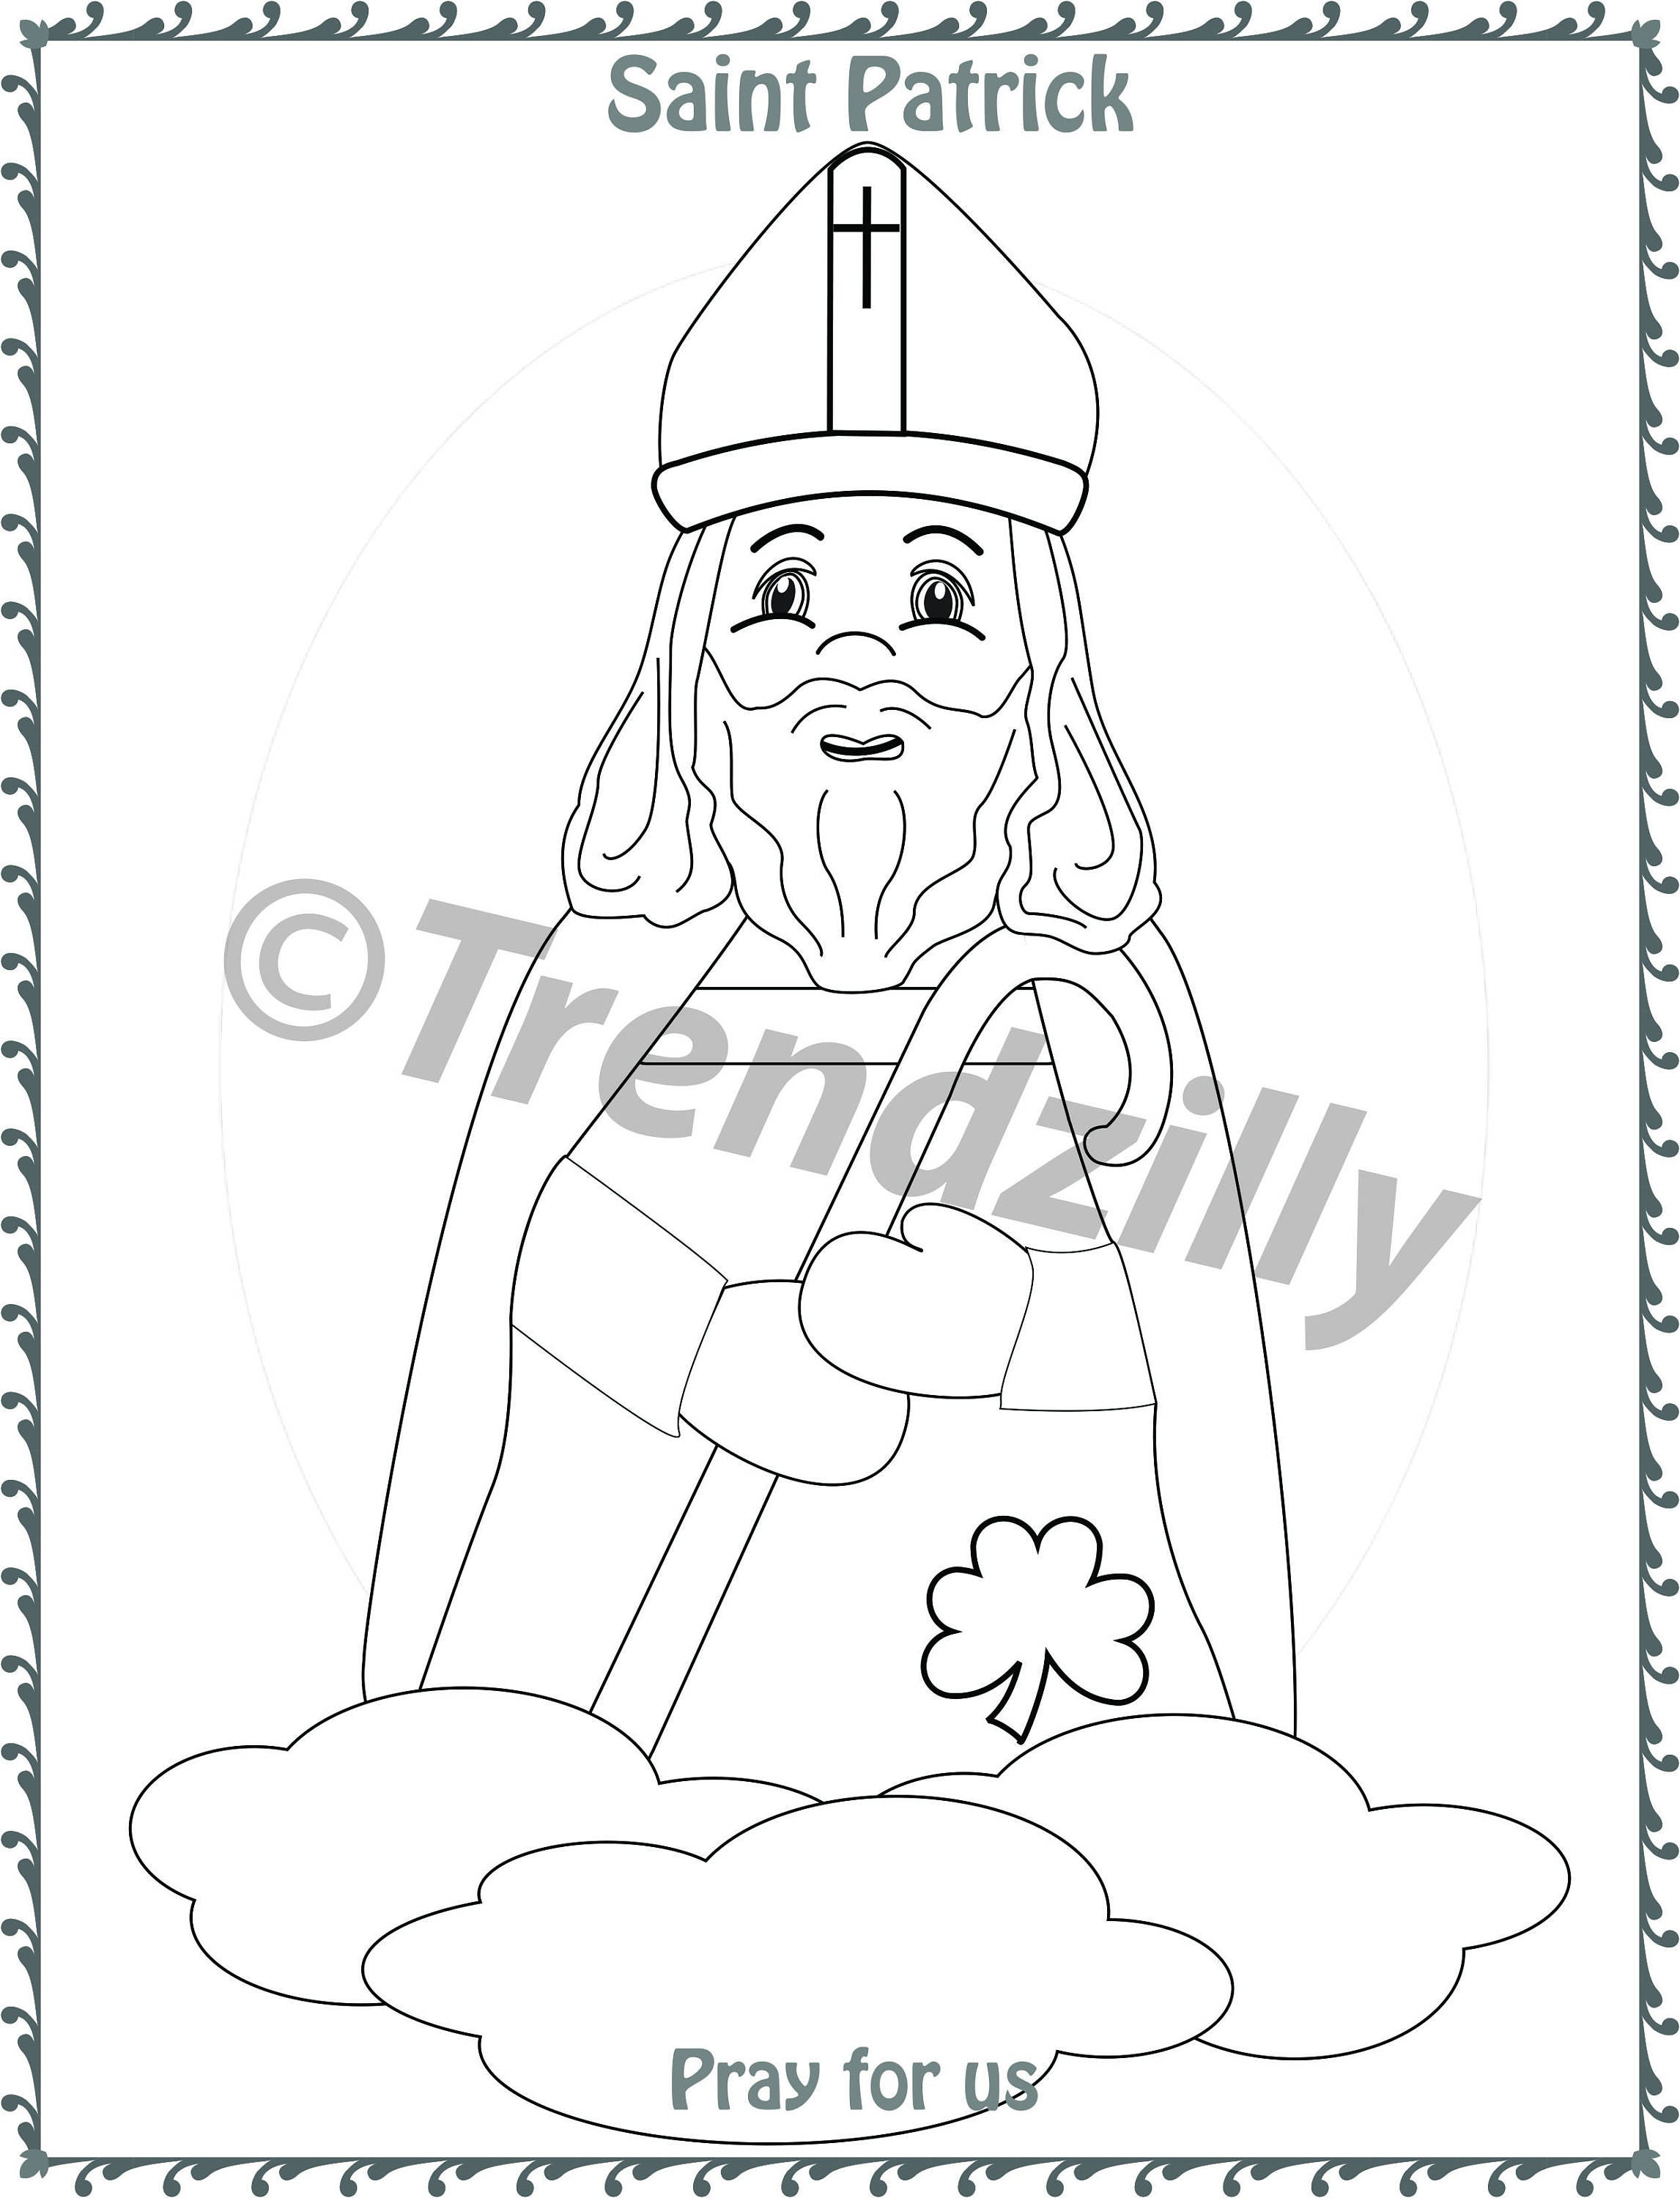 Coloring book download zip -  Coloring Book Printable Download 1